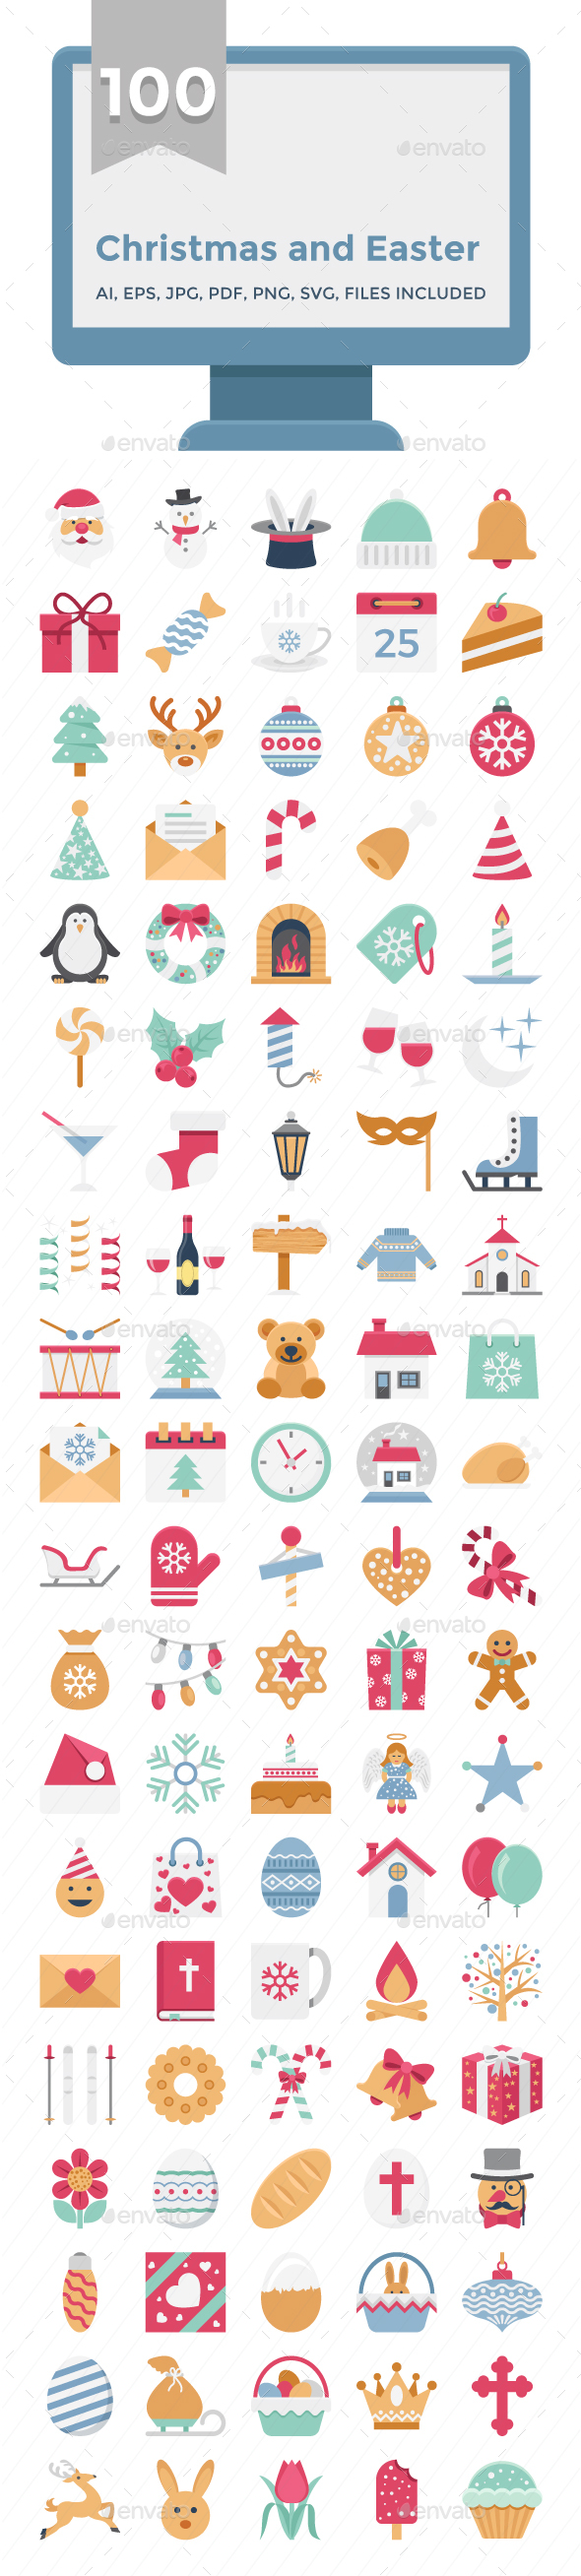 Easter and Christmas Vector Icon Pack - Icons